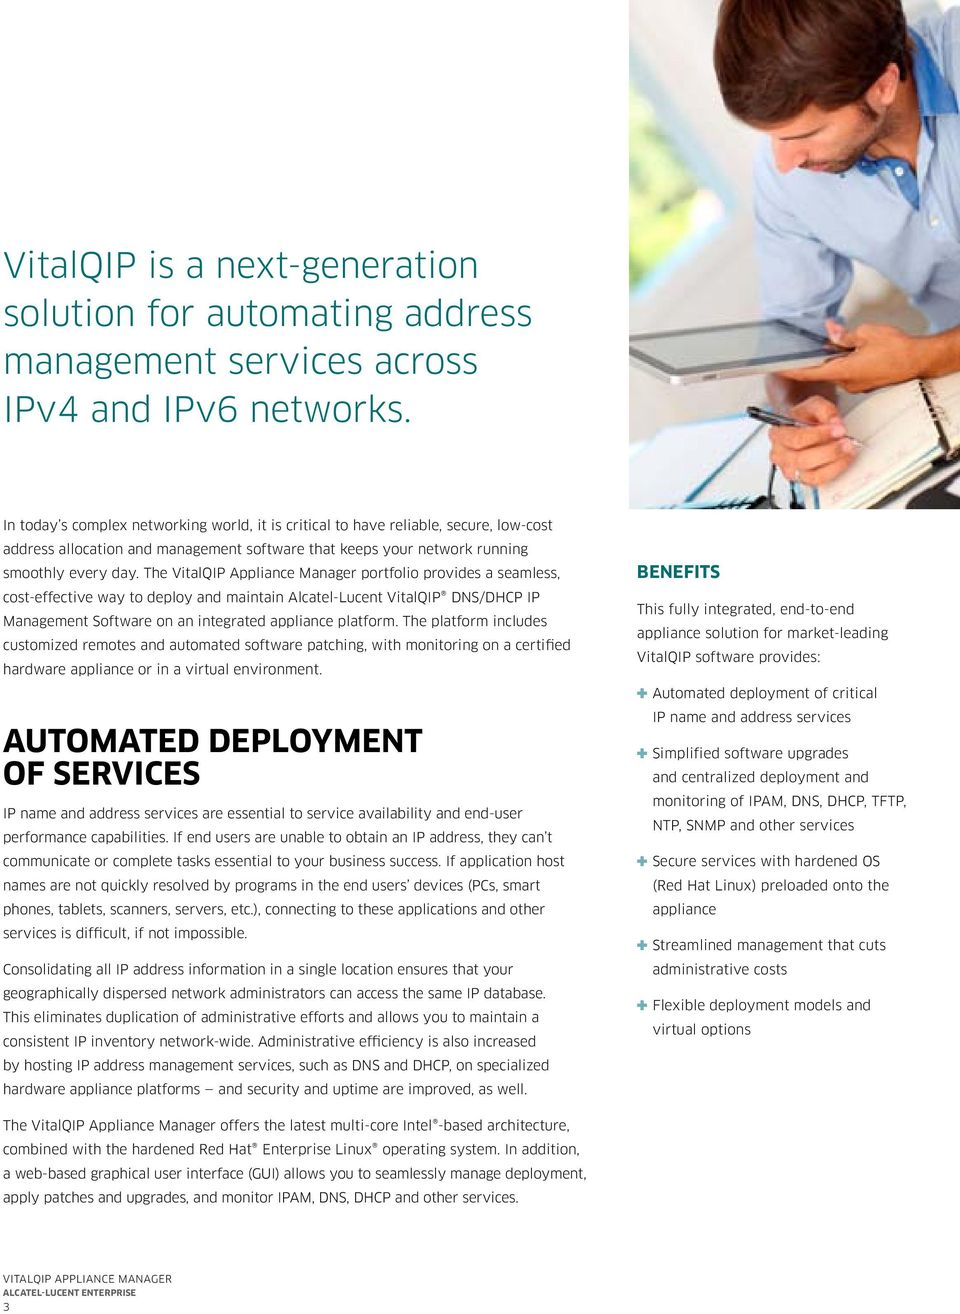 The VitalQIP Appliance Manager portfolio provides a seamless, cost-effective way to deploy and maintain Alcatel-Lucent VitalQIP DNS/DHCP IP Management Software on an integrated appliance platform.